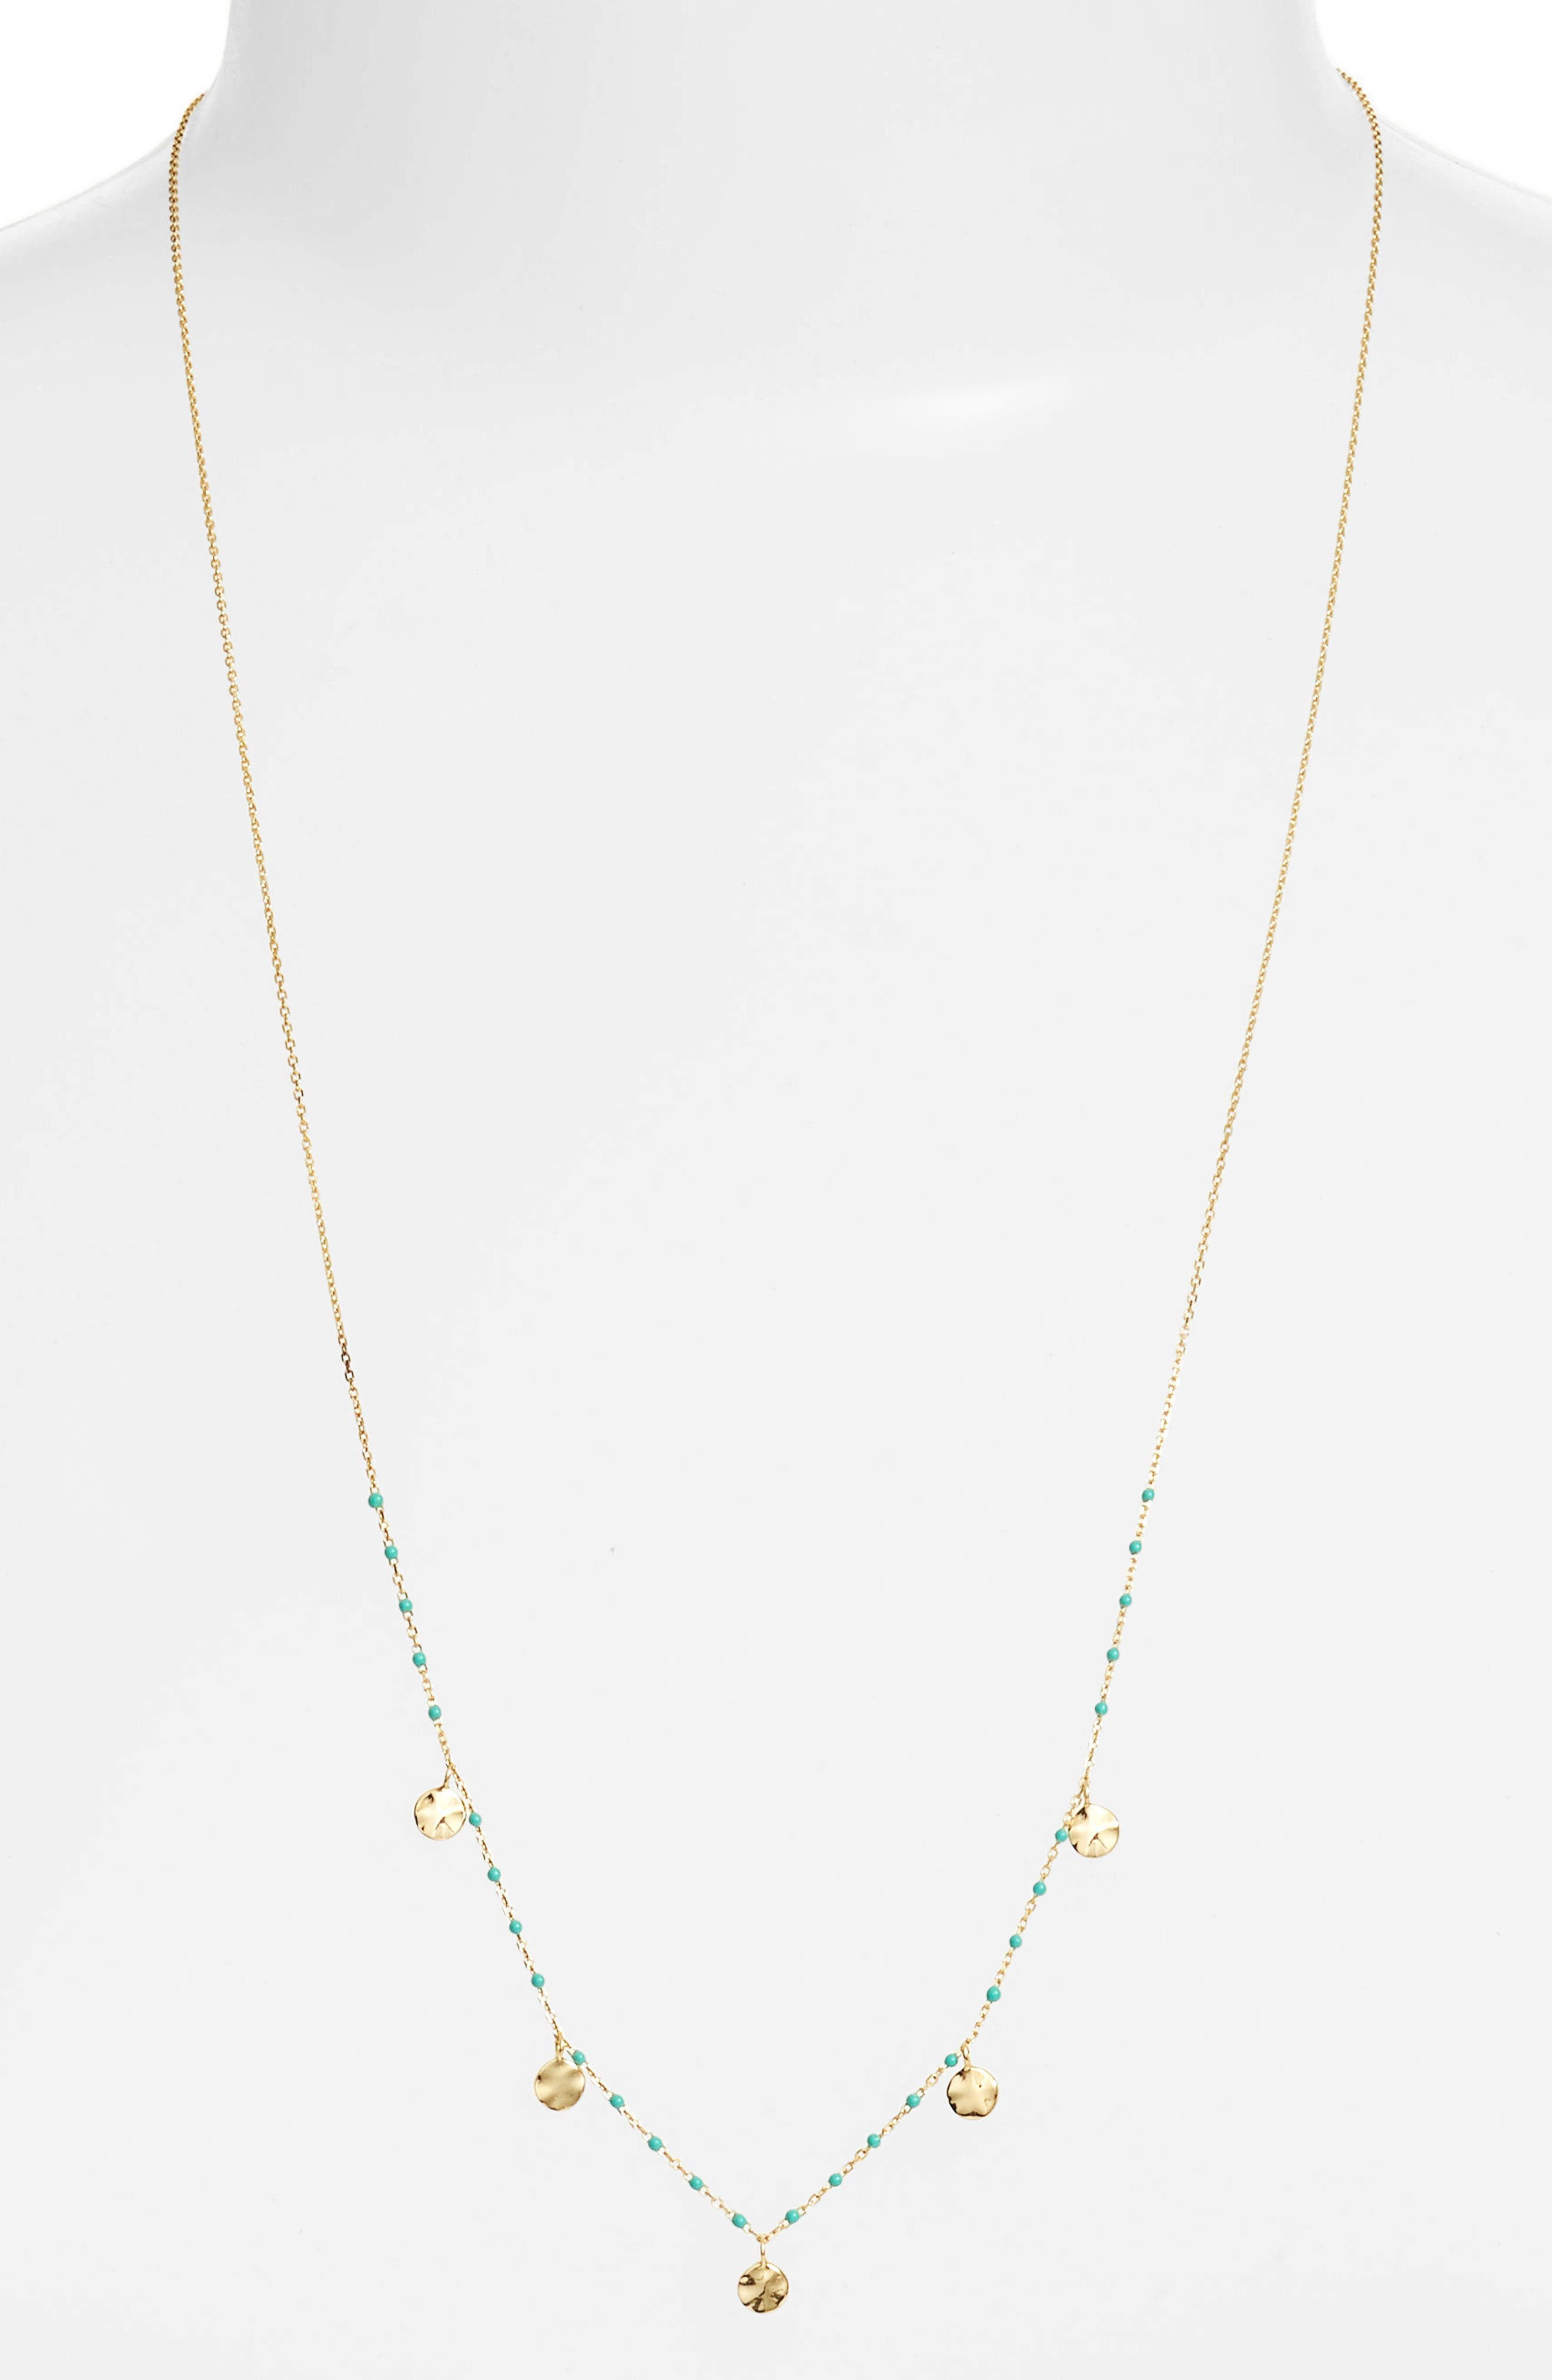 Enamel Bead Mirror Drop Necklace,                             Main thumbnail 1, color,                             TURQUOISE/ GOLD